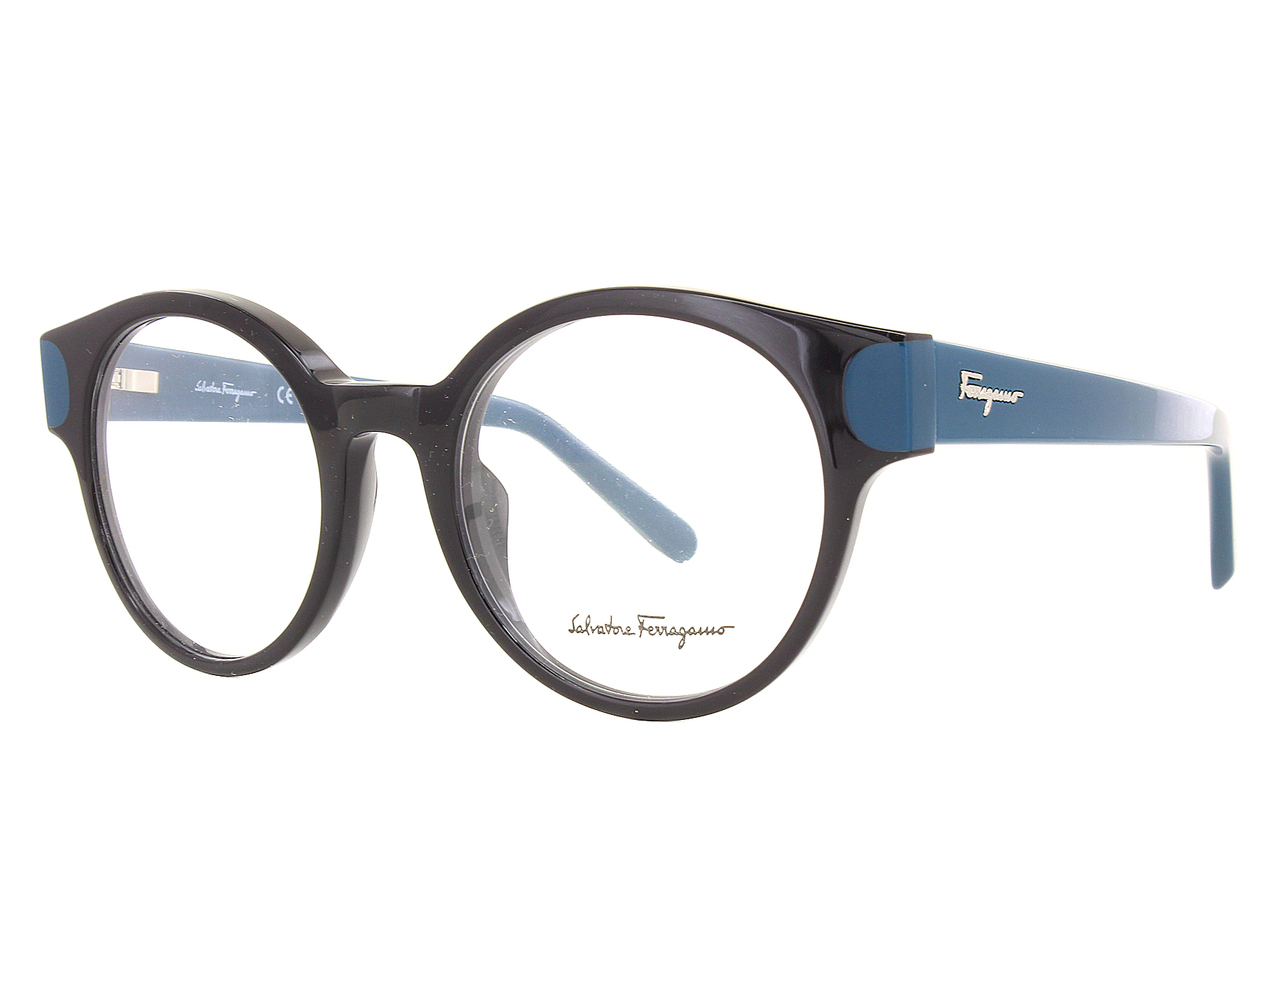 56bd1d092f Details about NEW Salvatore Ferragamo SF2757-973-5020 Black Petrol 50mm  Eyeglasses